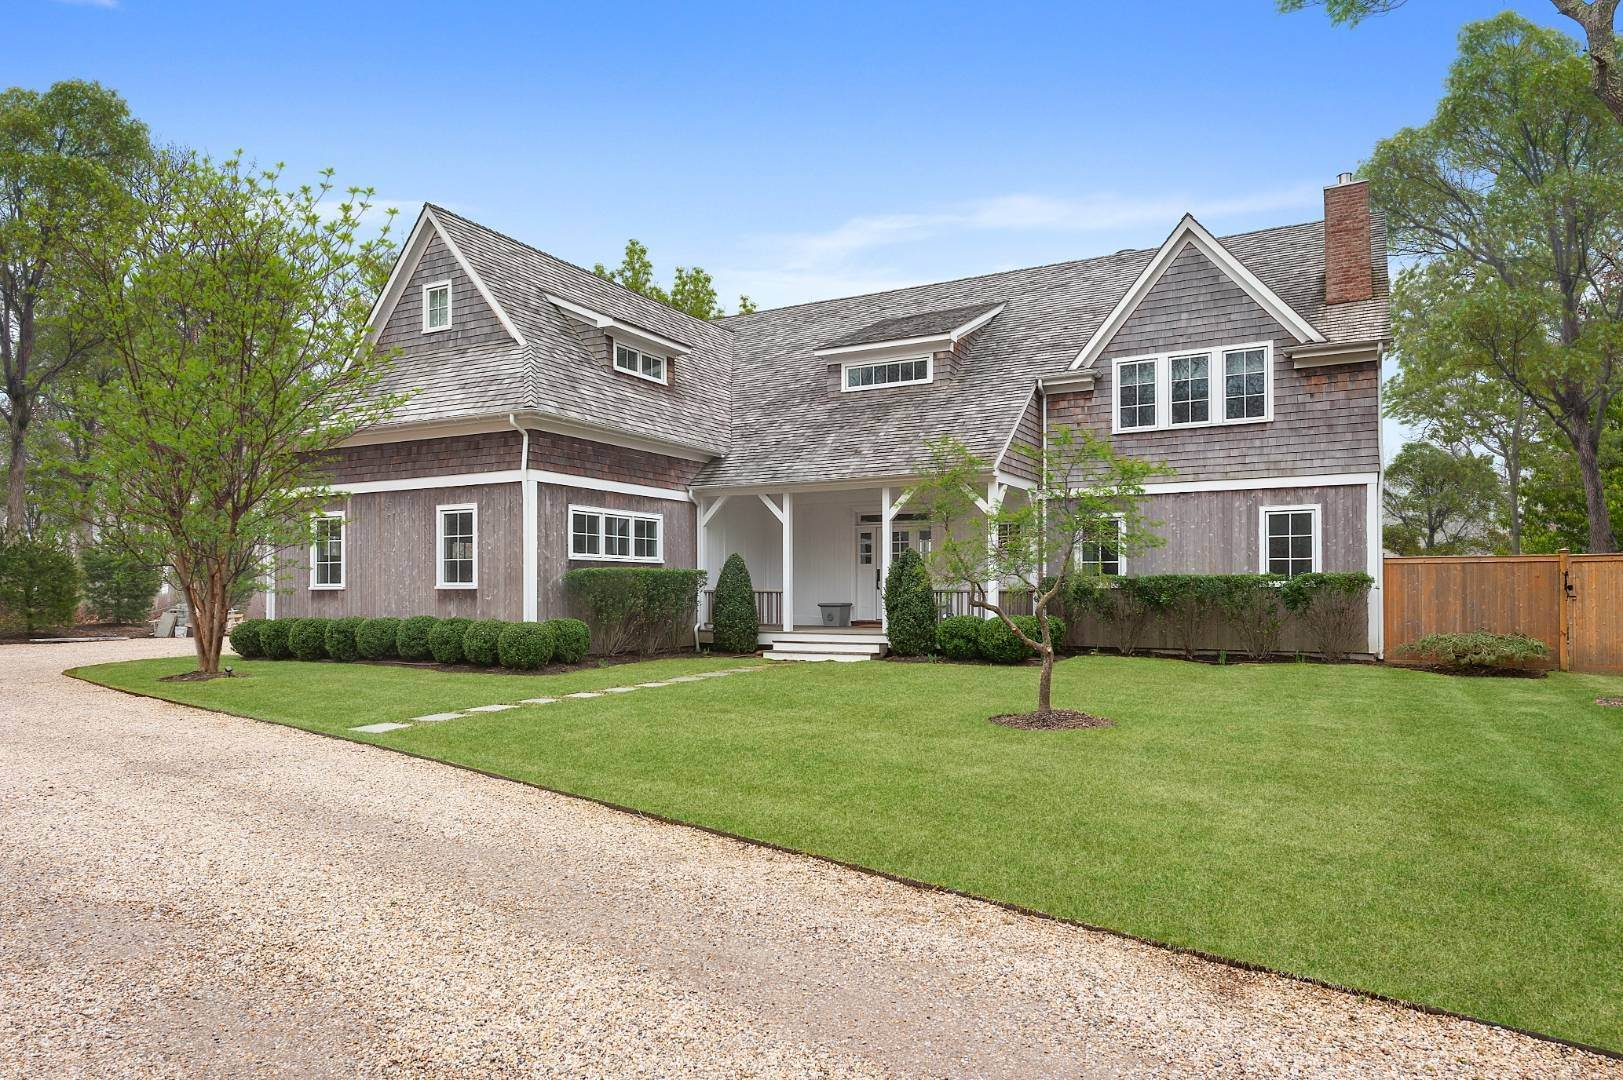 Single Family Home for Sale at East Hampton Classic 54 Towhee Trl, East Hampton, NY 11937